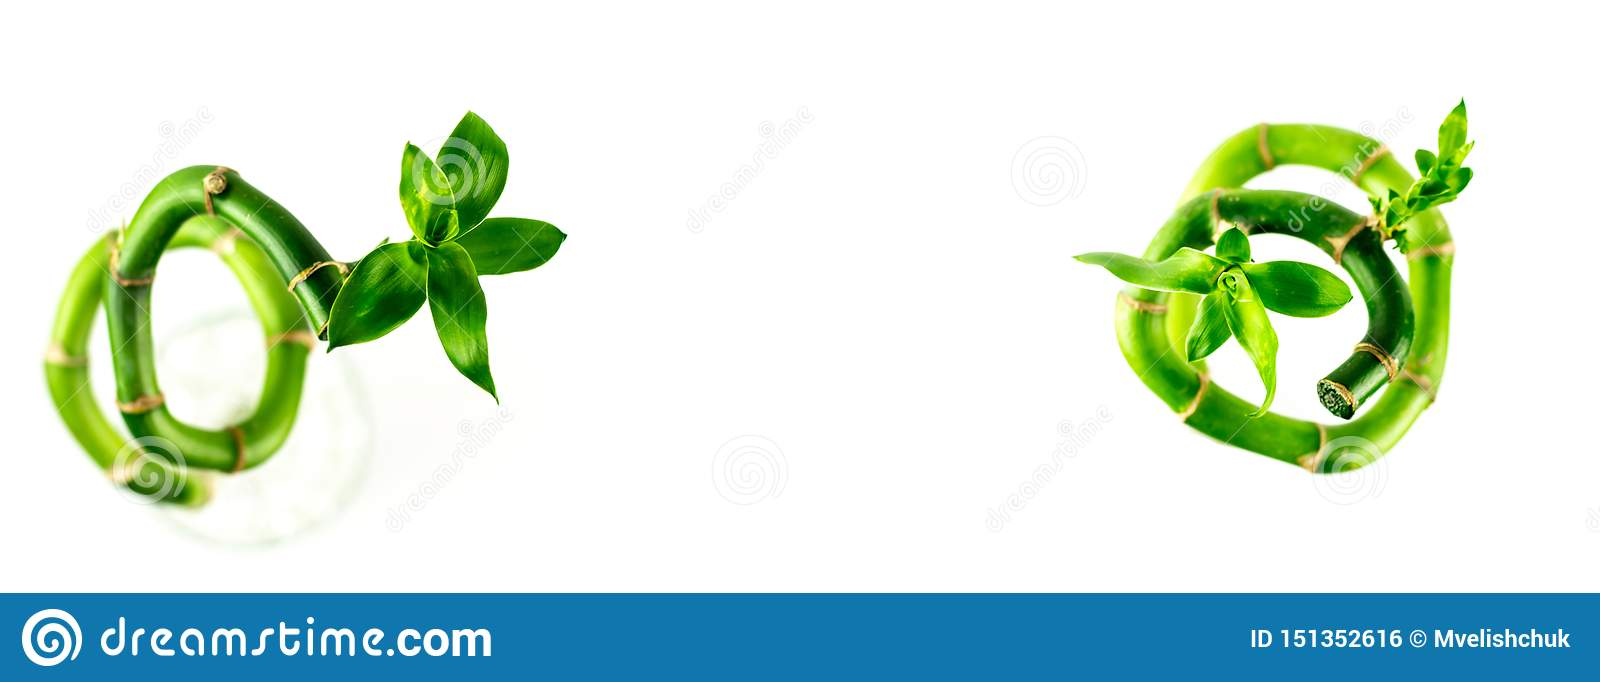 Two spiral shape stem of Lucky Bamboo Dracaena Sanderiana with green leaves, isolated on white background.